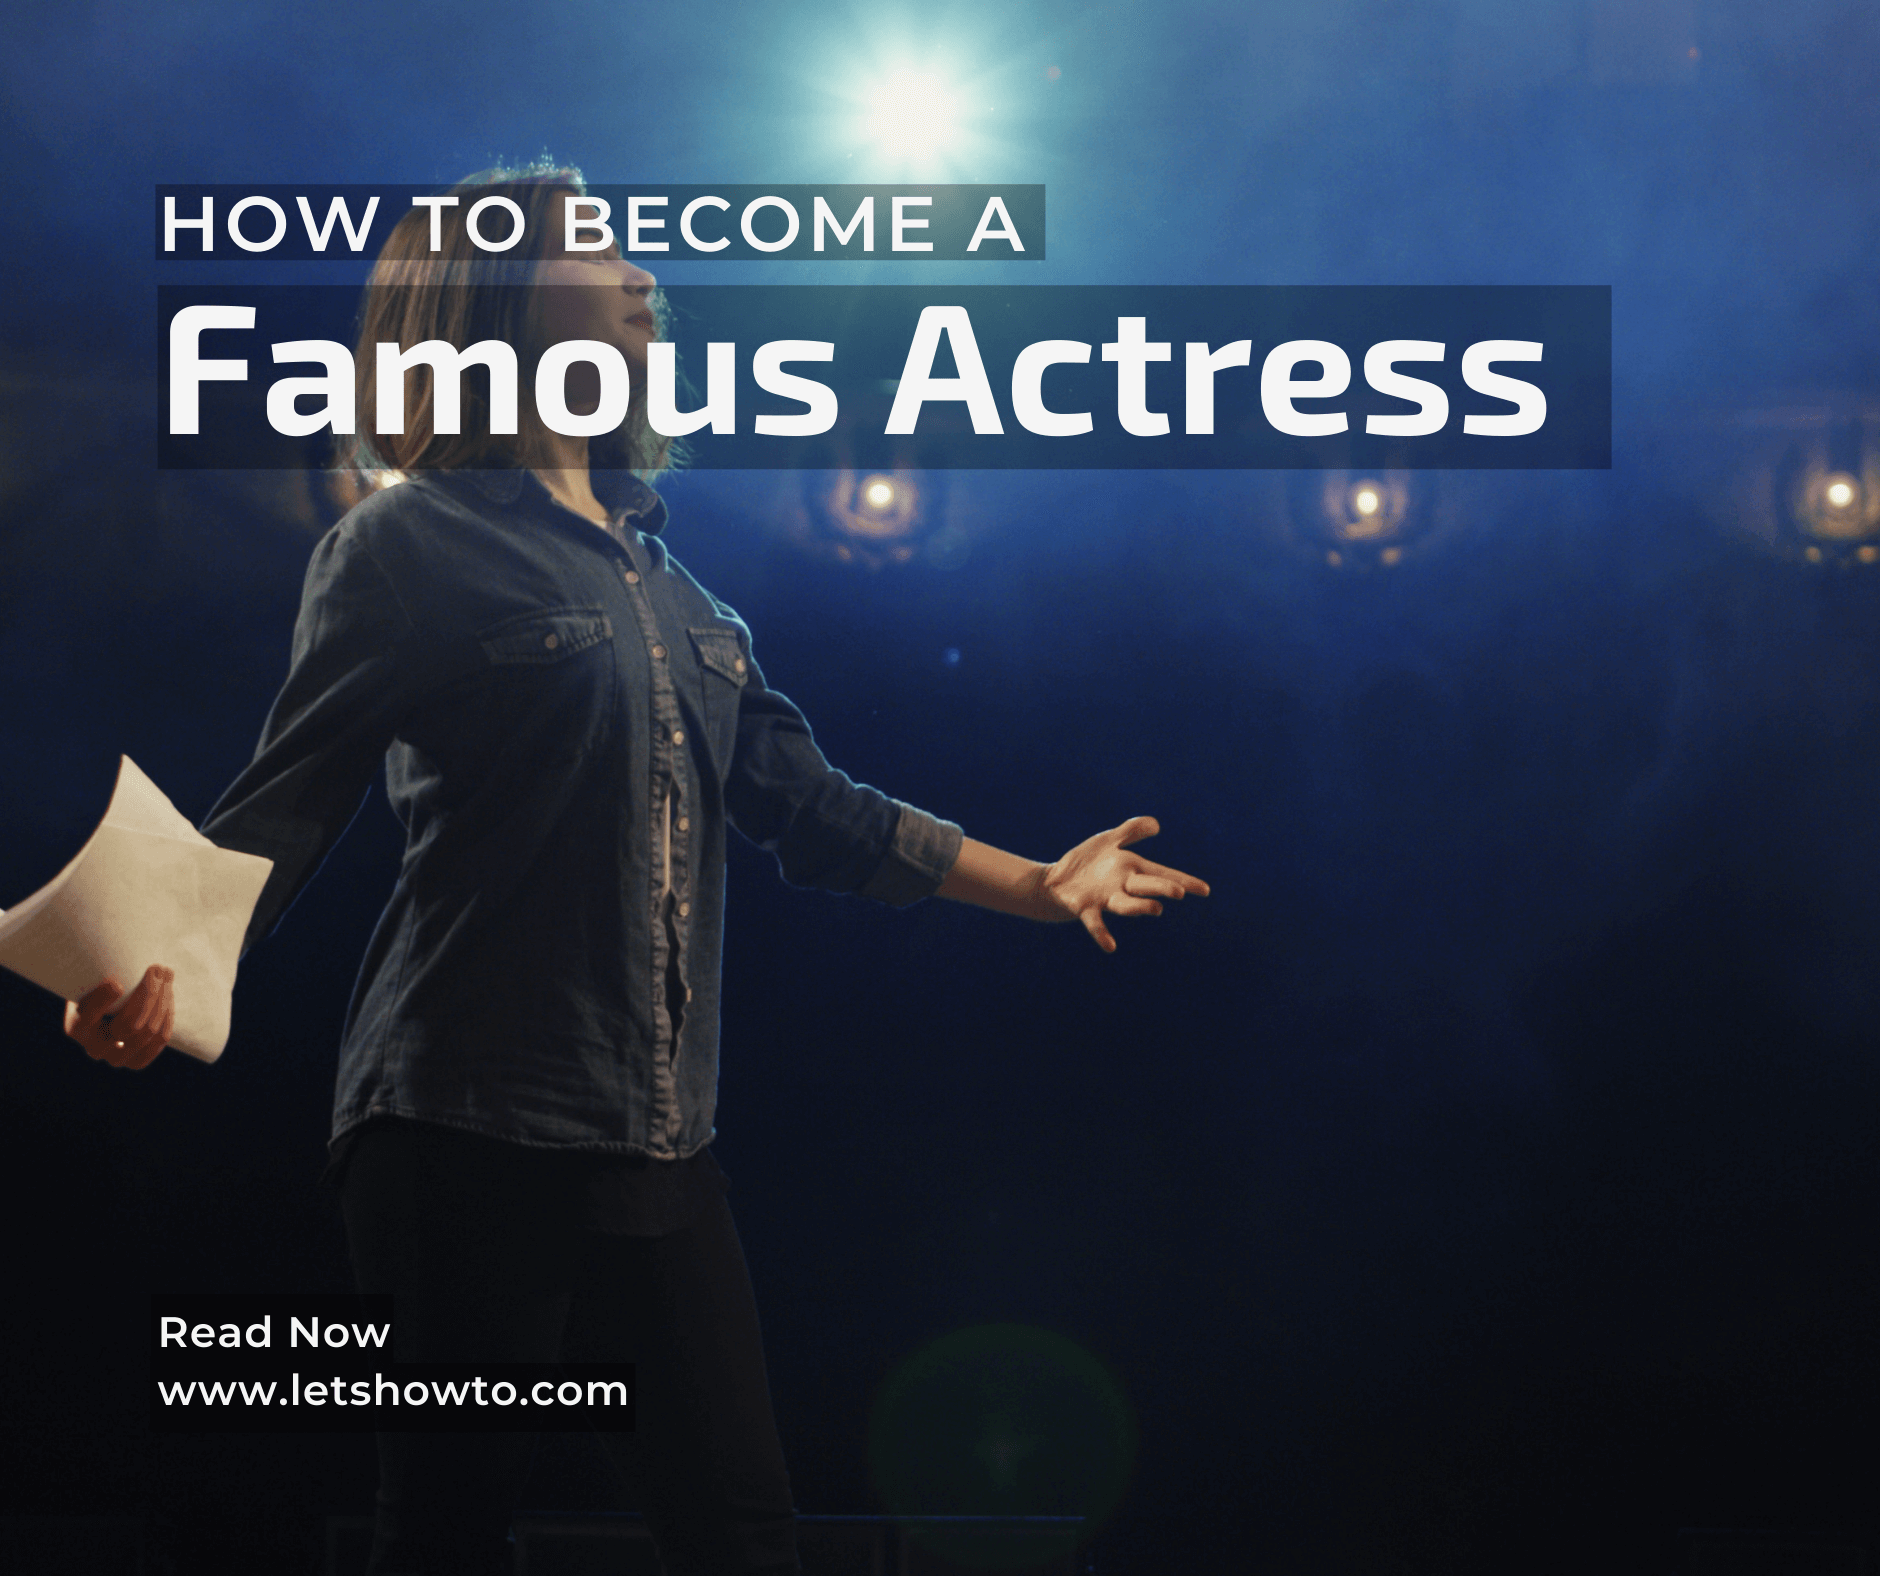 How To Become A Famous Actress